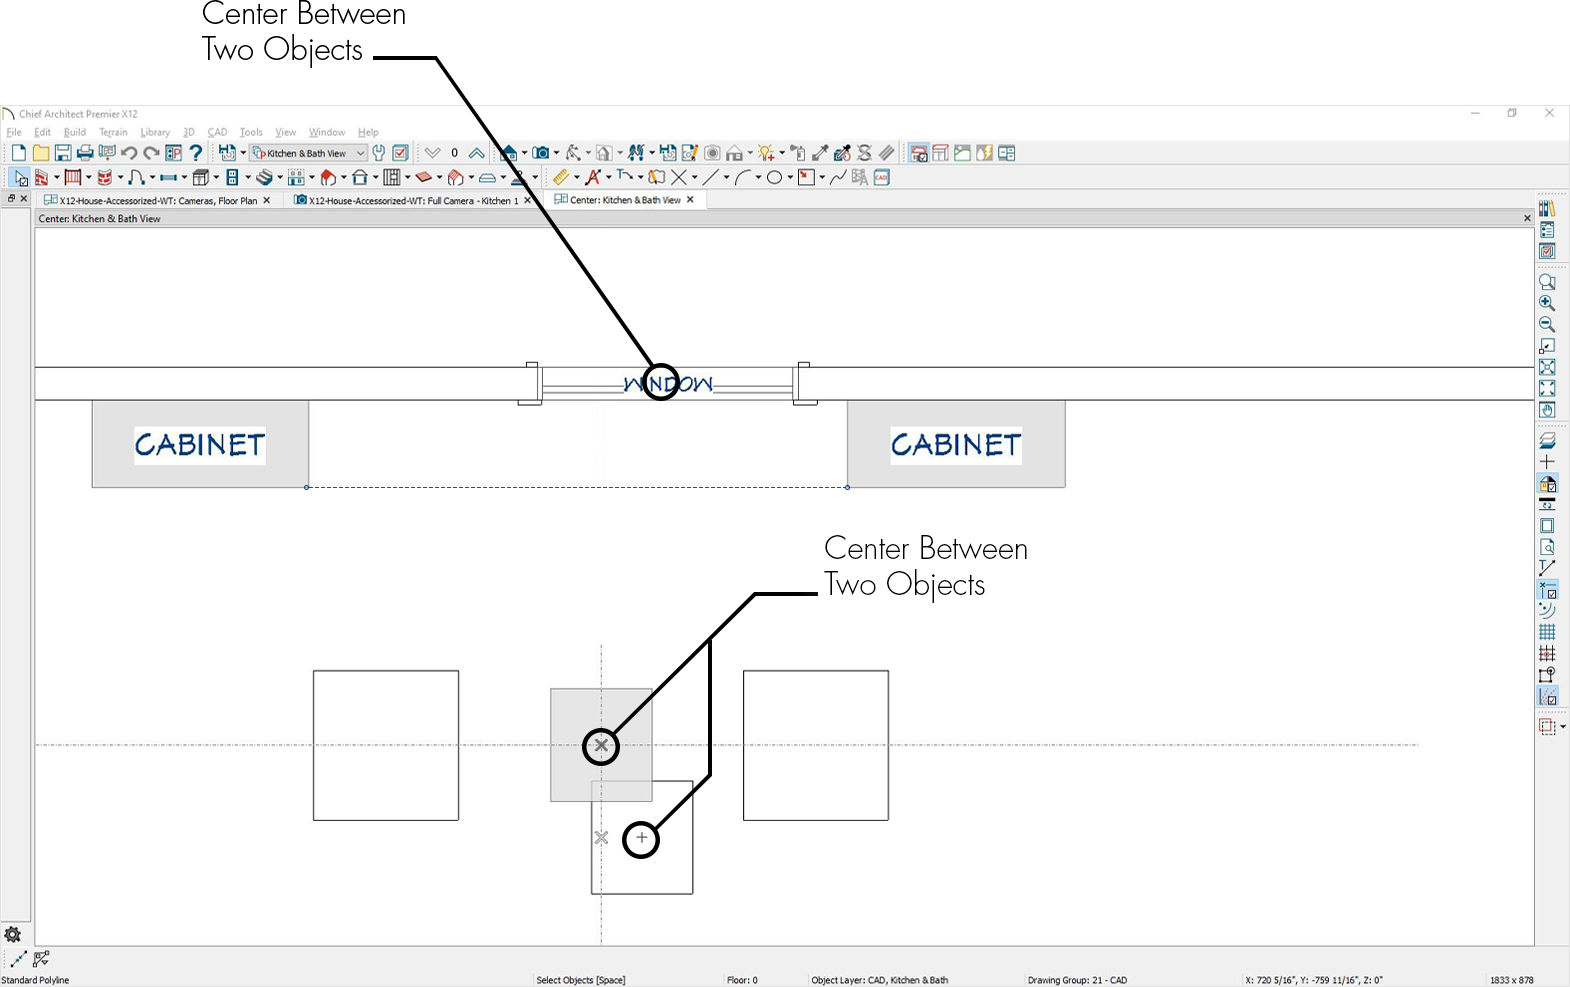 A plan view demonstrating how you can now center an object between two other objects.